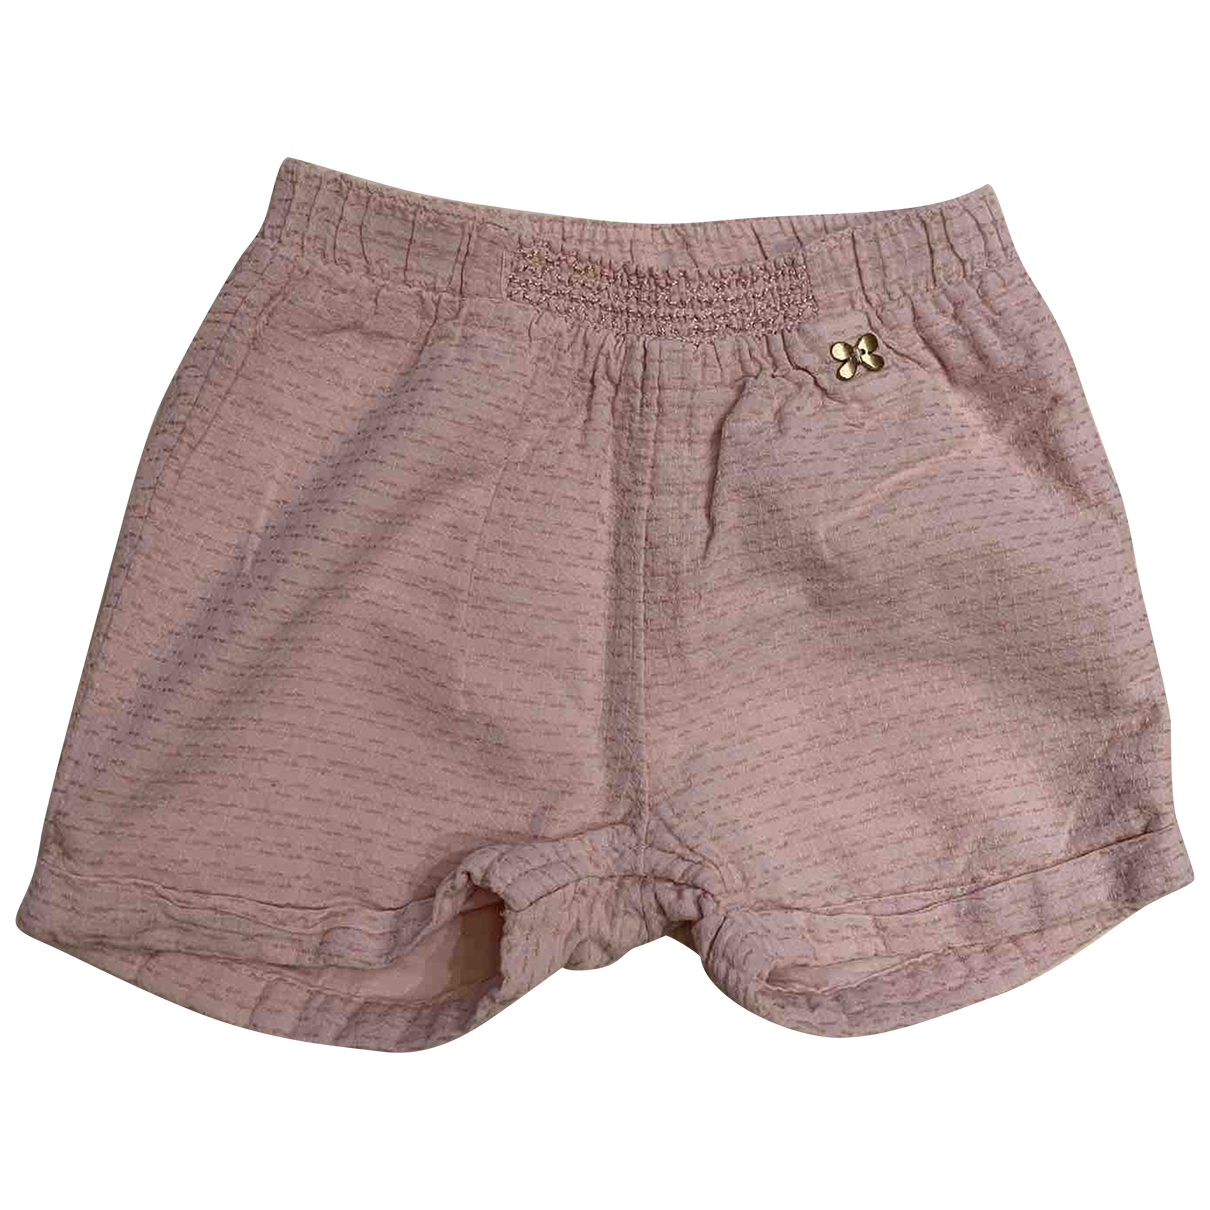 Non Signé / Unsigned N Pink Cotton Shorts for Kids 9 months - up to 71cm FR